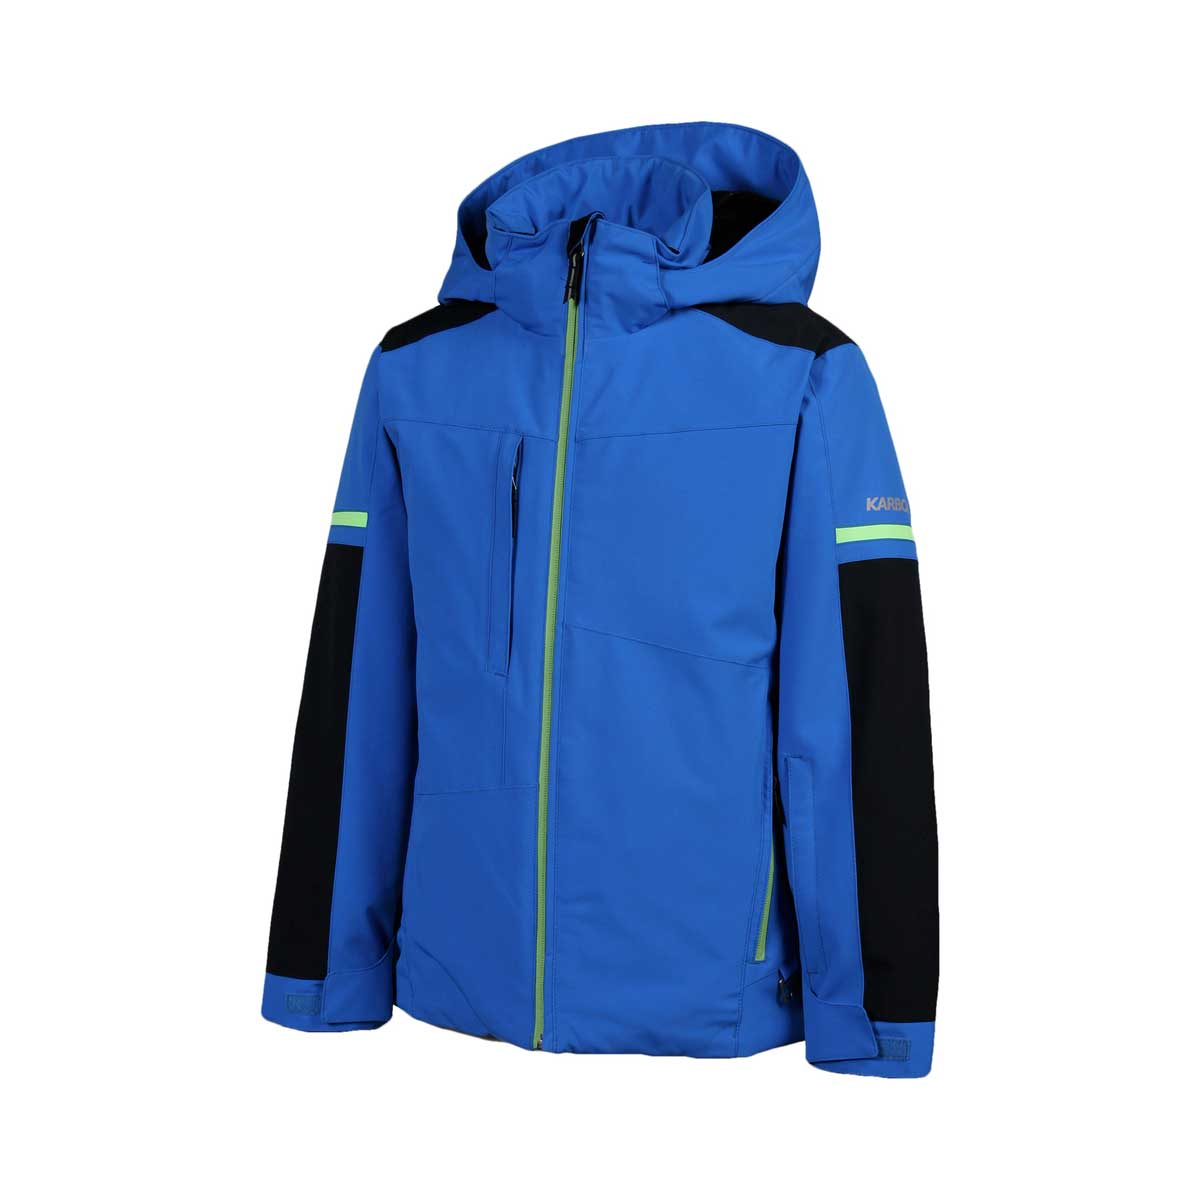 Karbon Boys' Exhaust Jacket in Olympic blue